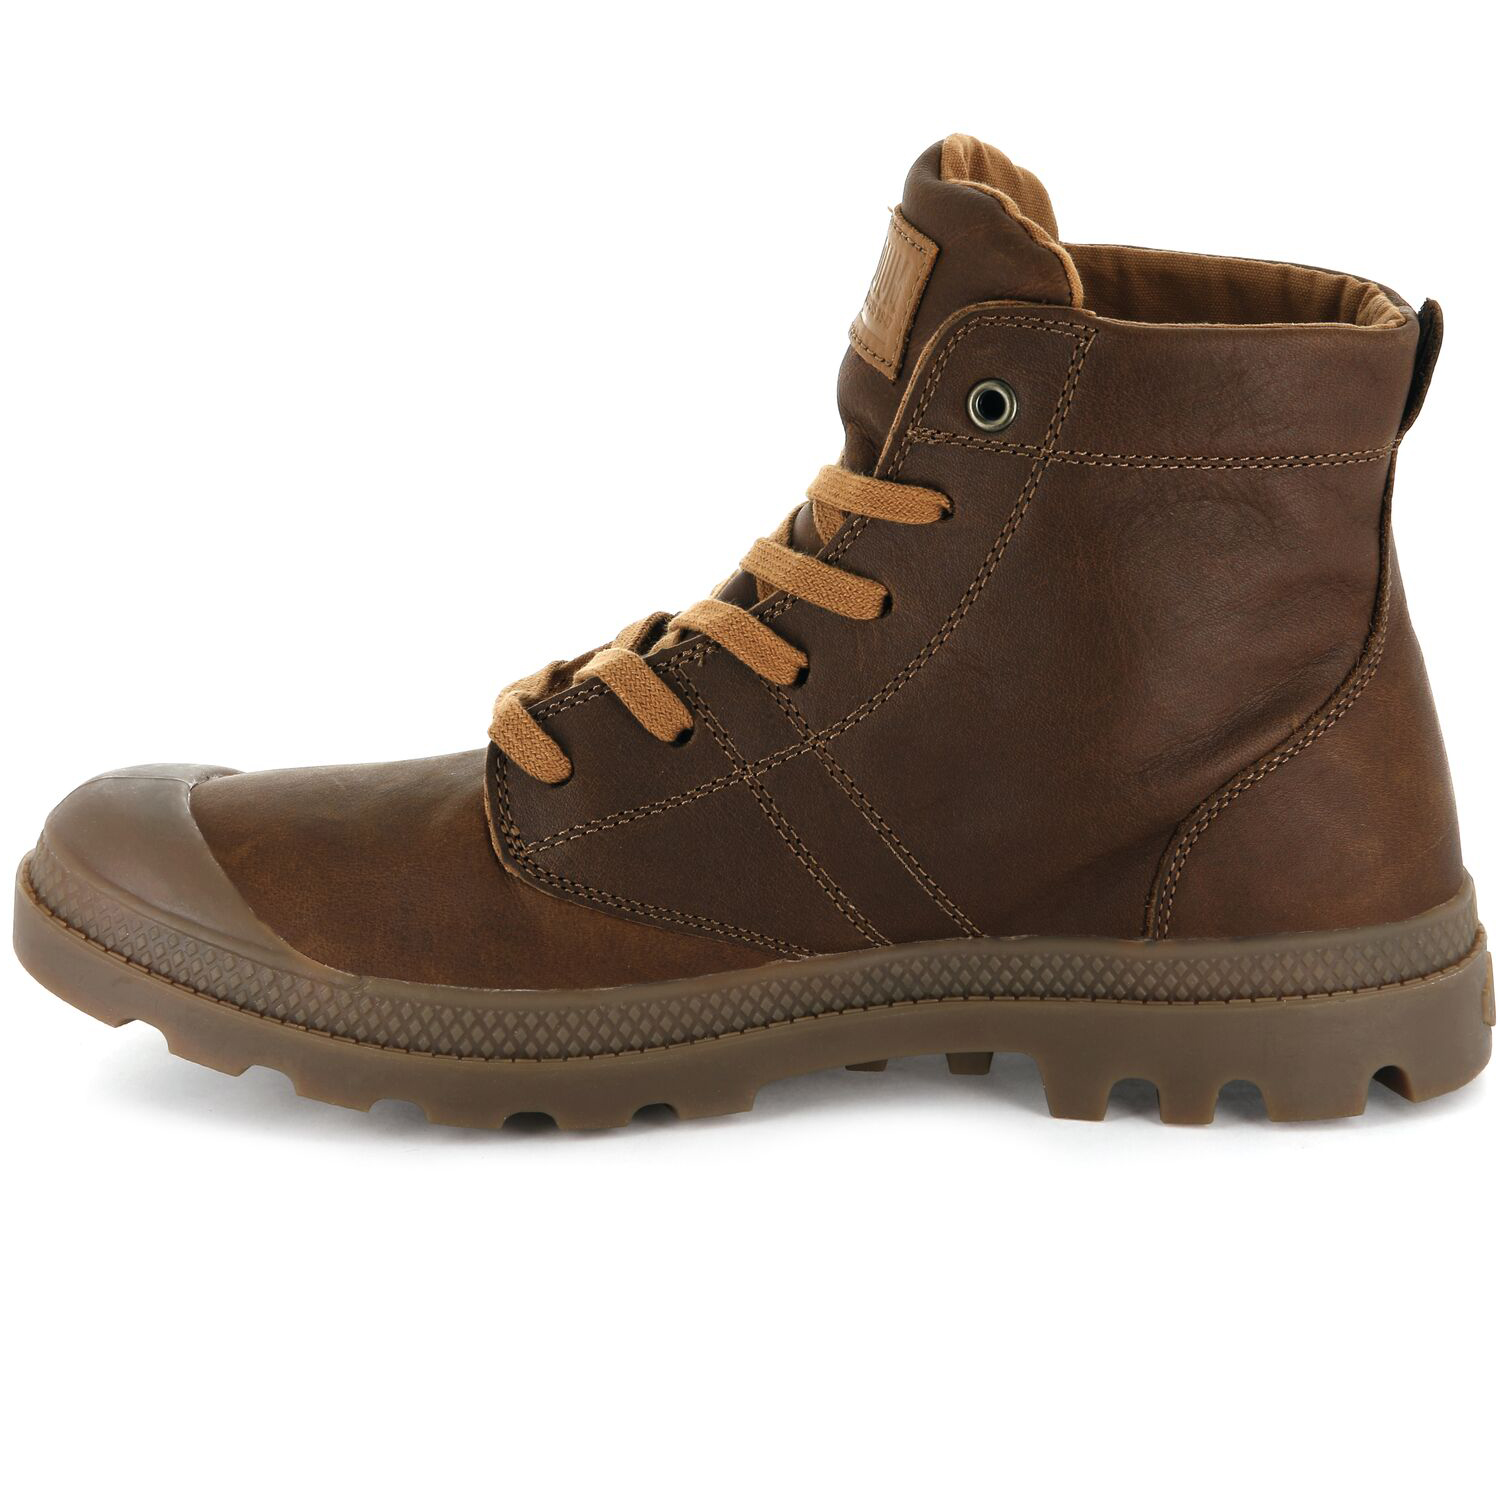 Palladium-Mens-Pallabrousse-Leather-Lace-Up-Boots-Walking-Chukka-Ankle-Shoes thumbnail 14